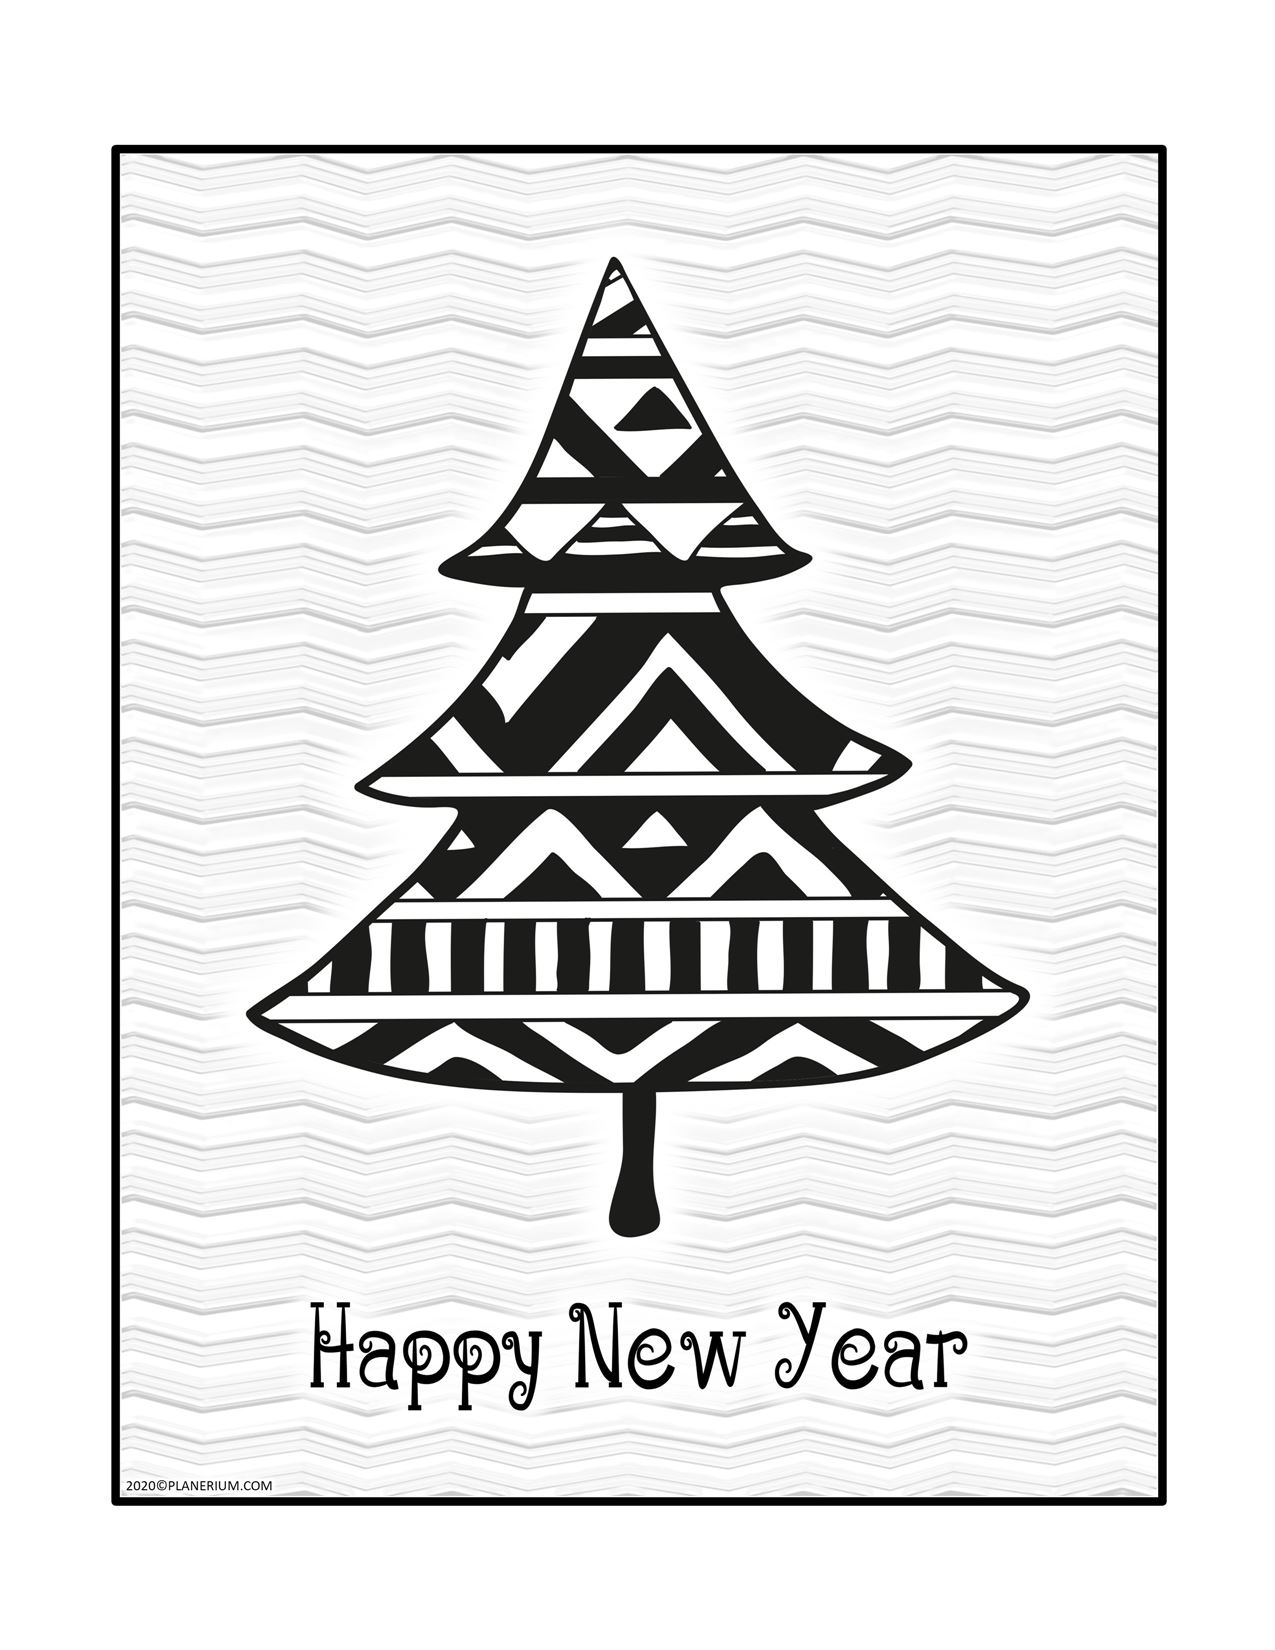 Happy New Year Coloring Pages - Pattern on a Pine Tree - Greeting Card | Planerium